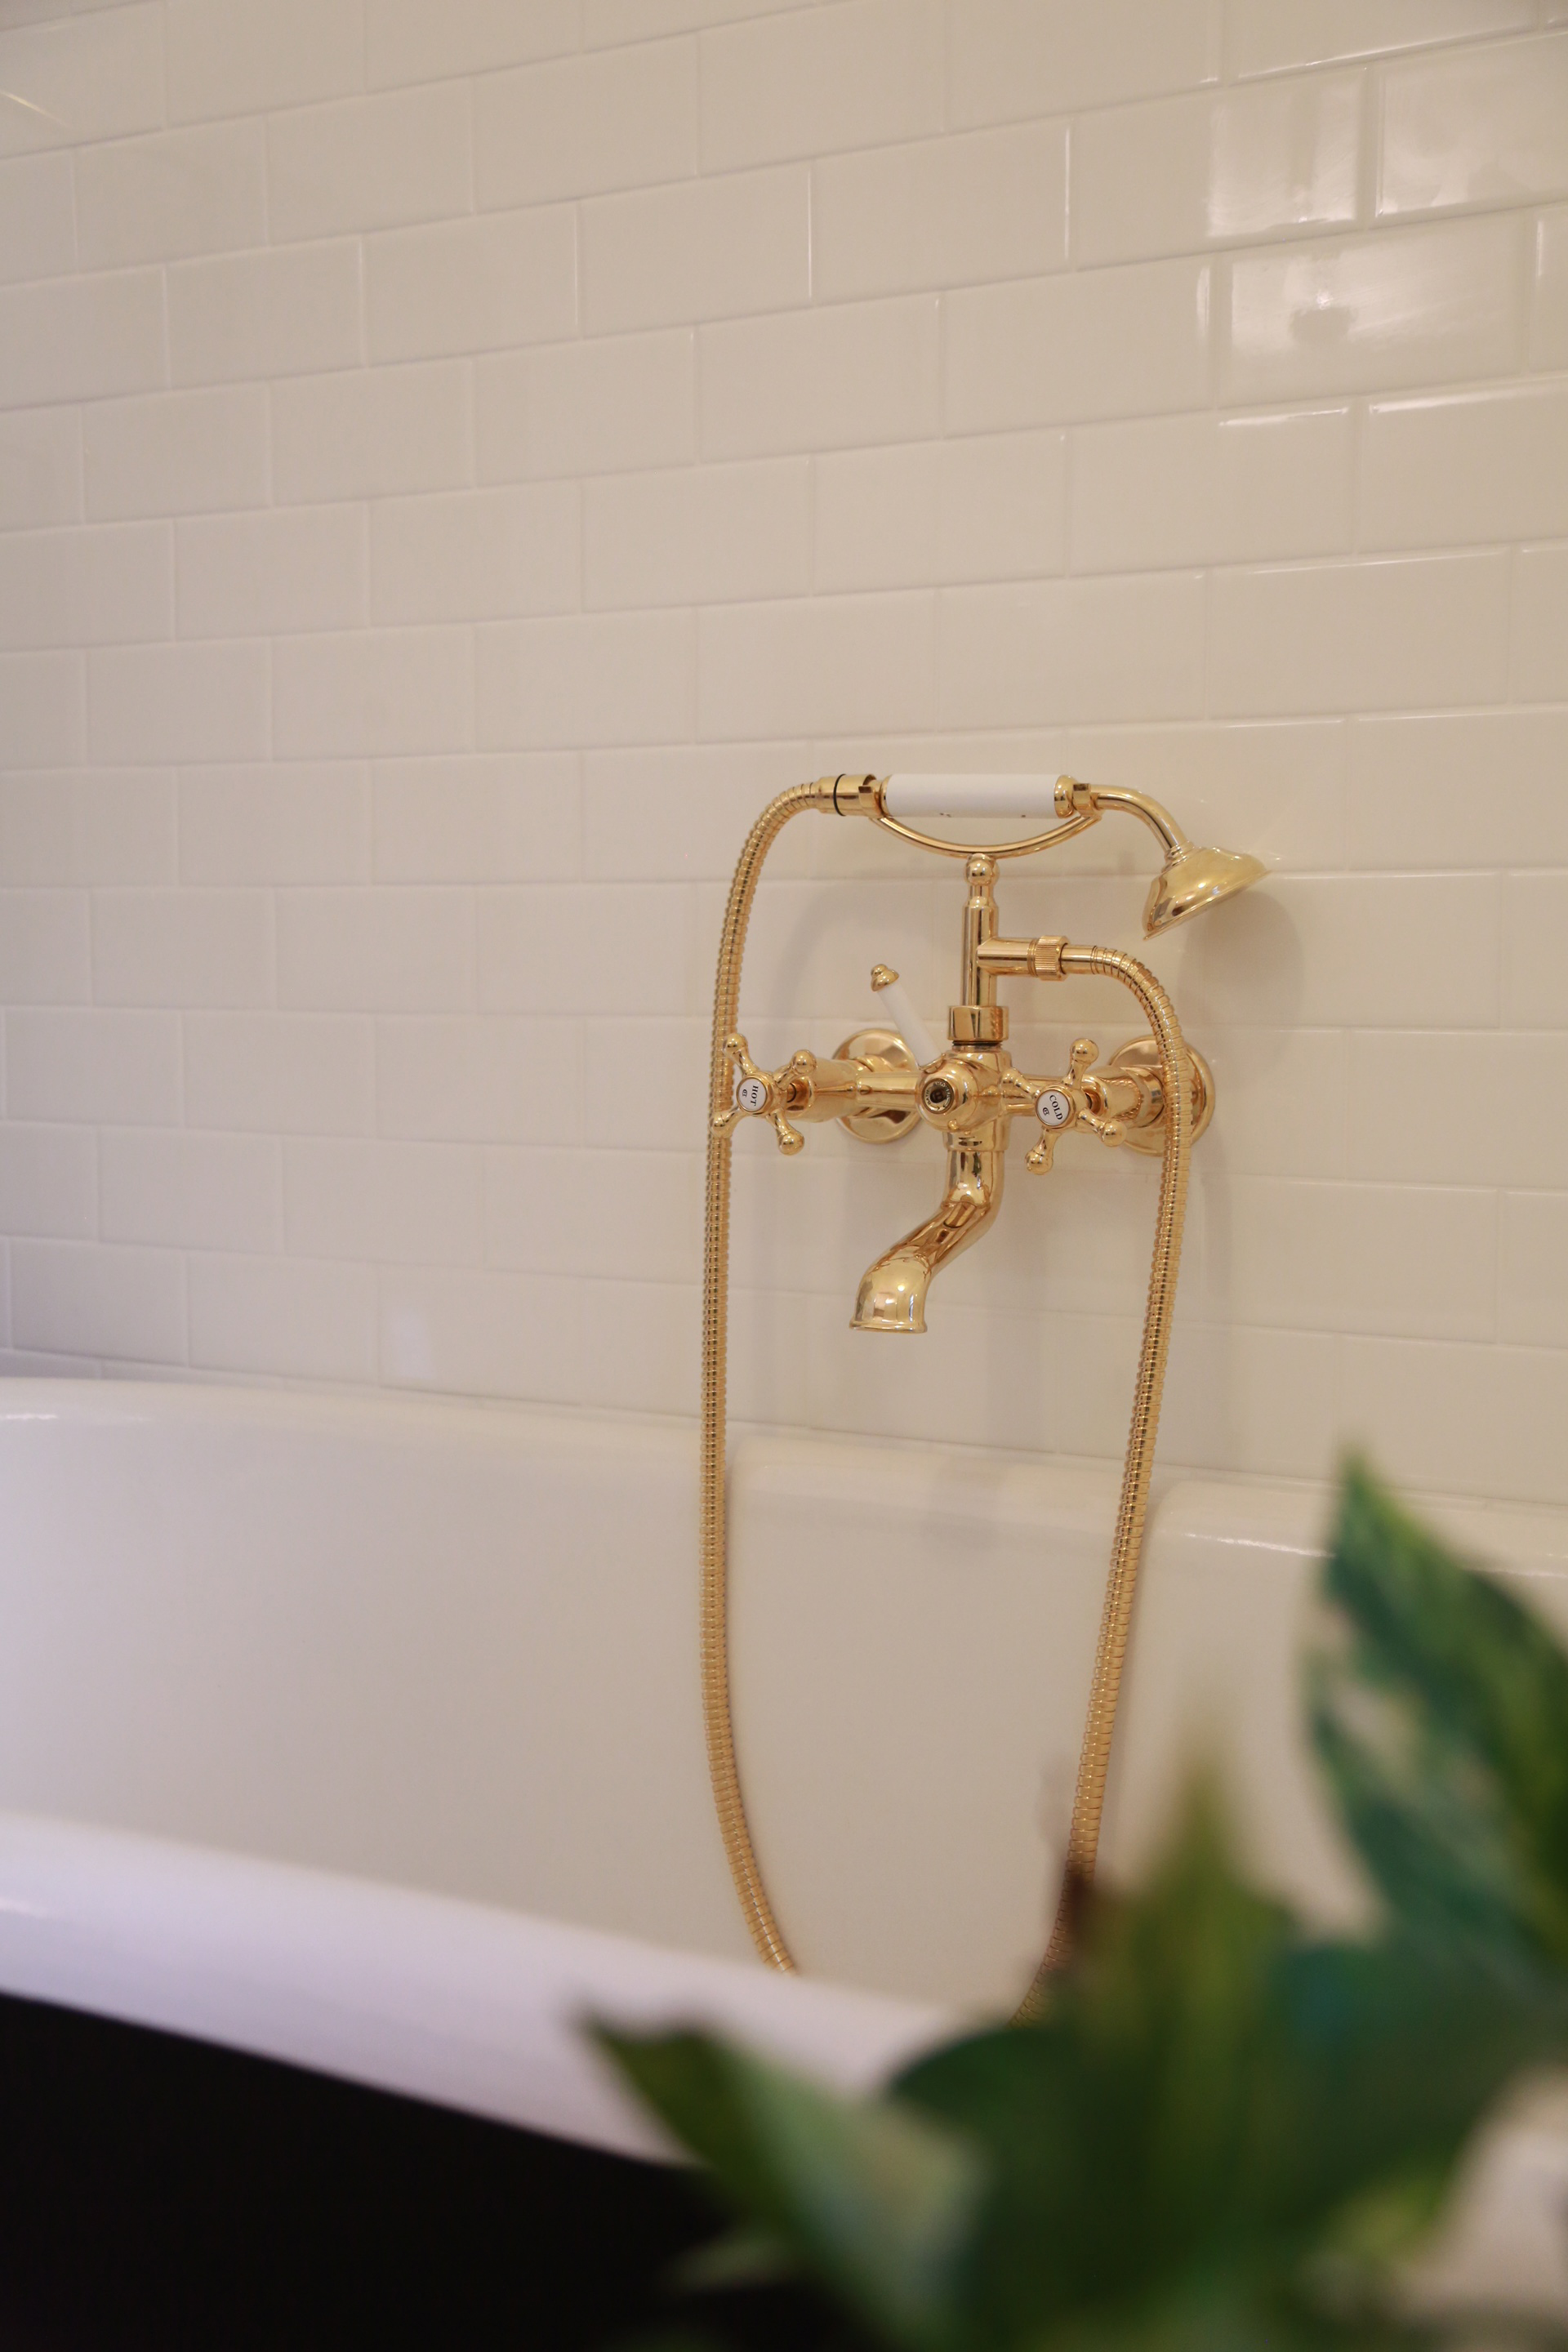 Roulette Cast Bath/Shower Diverter with Cradle & Handshower in Antique Brass finish with White Diverter Lever Upgrade